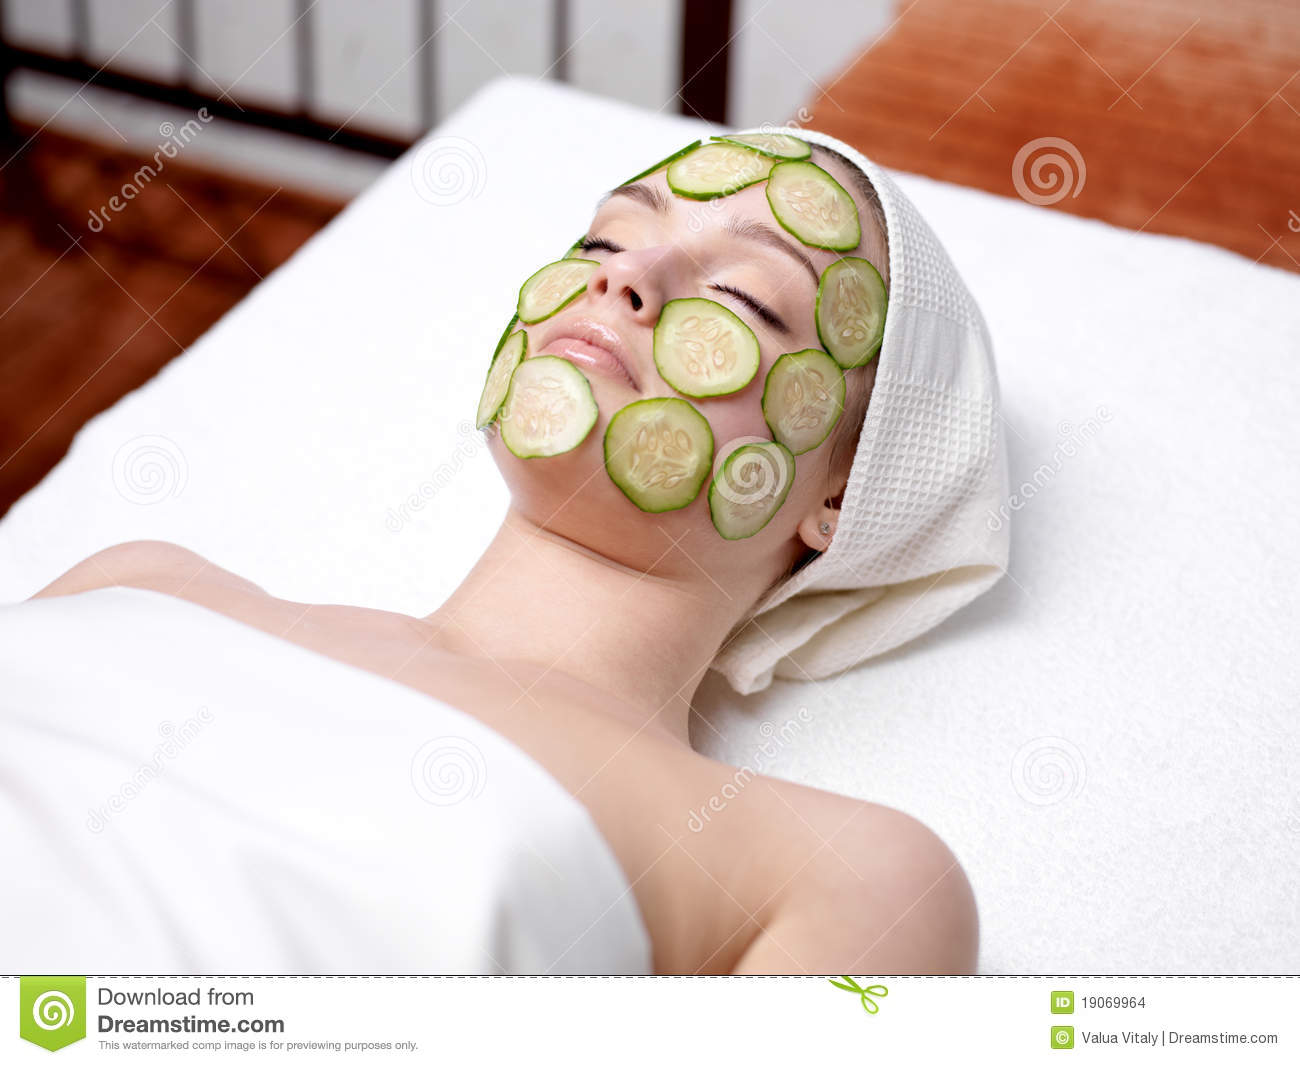 Amazing biiiig homemade skin care or facial masks sad when